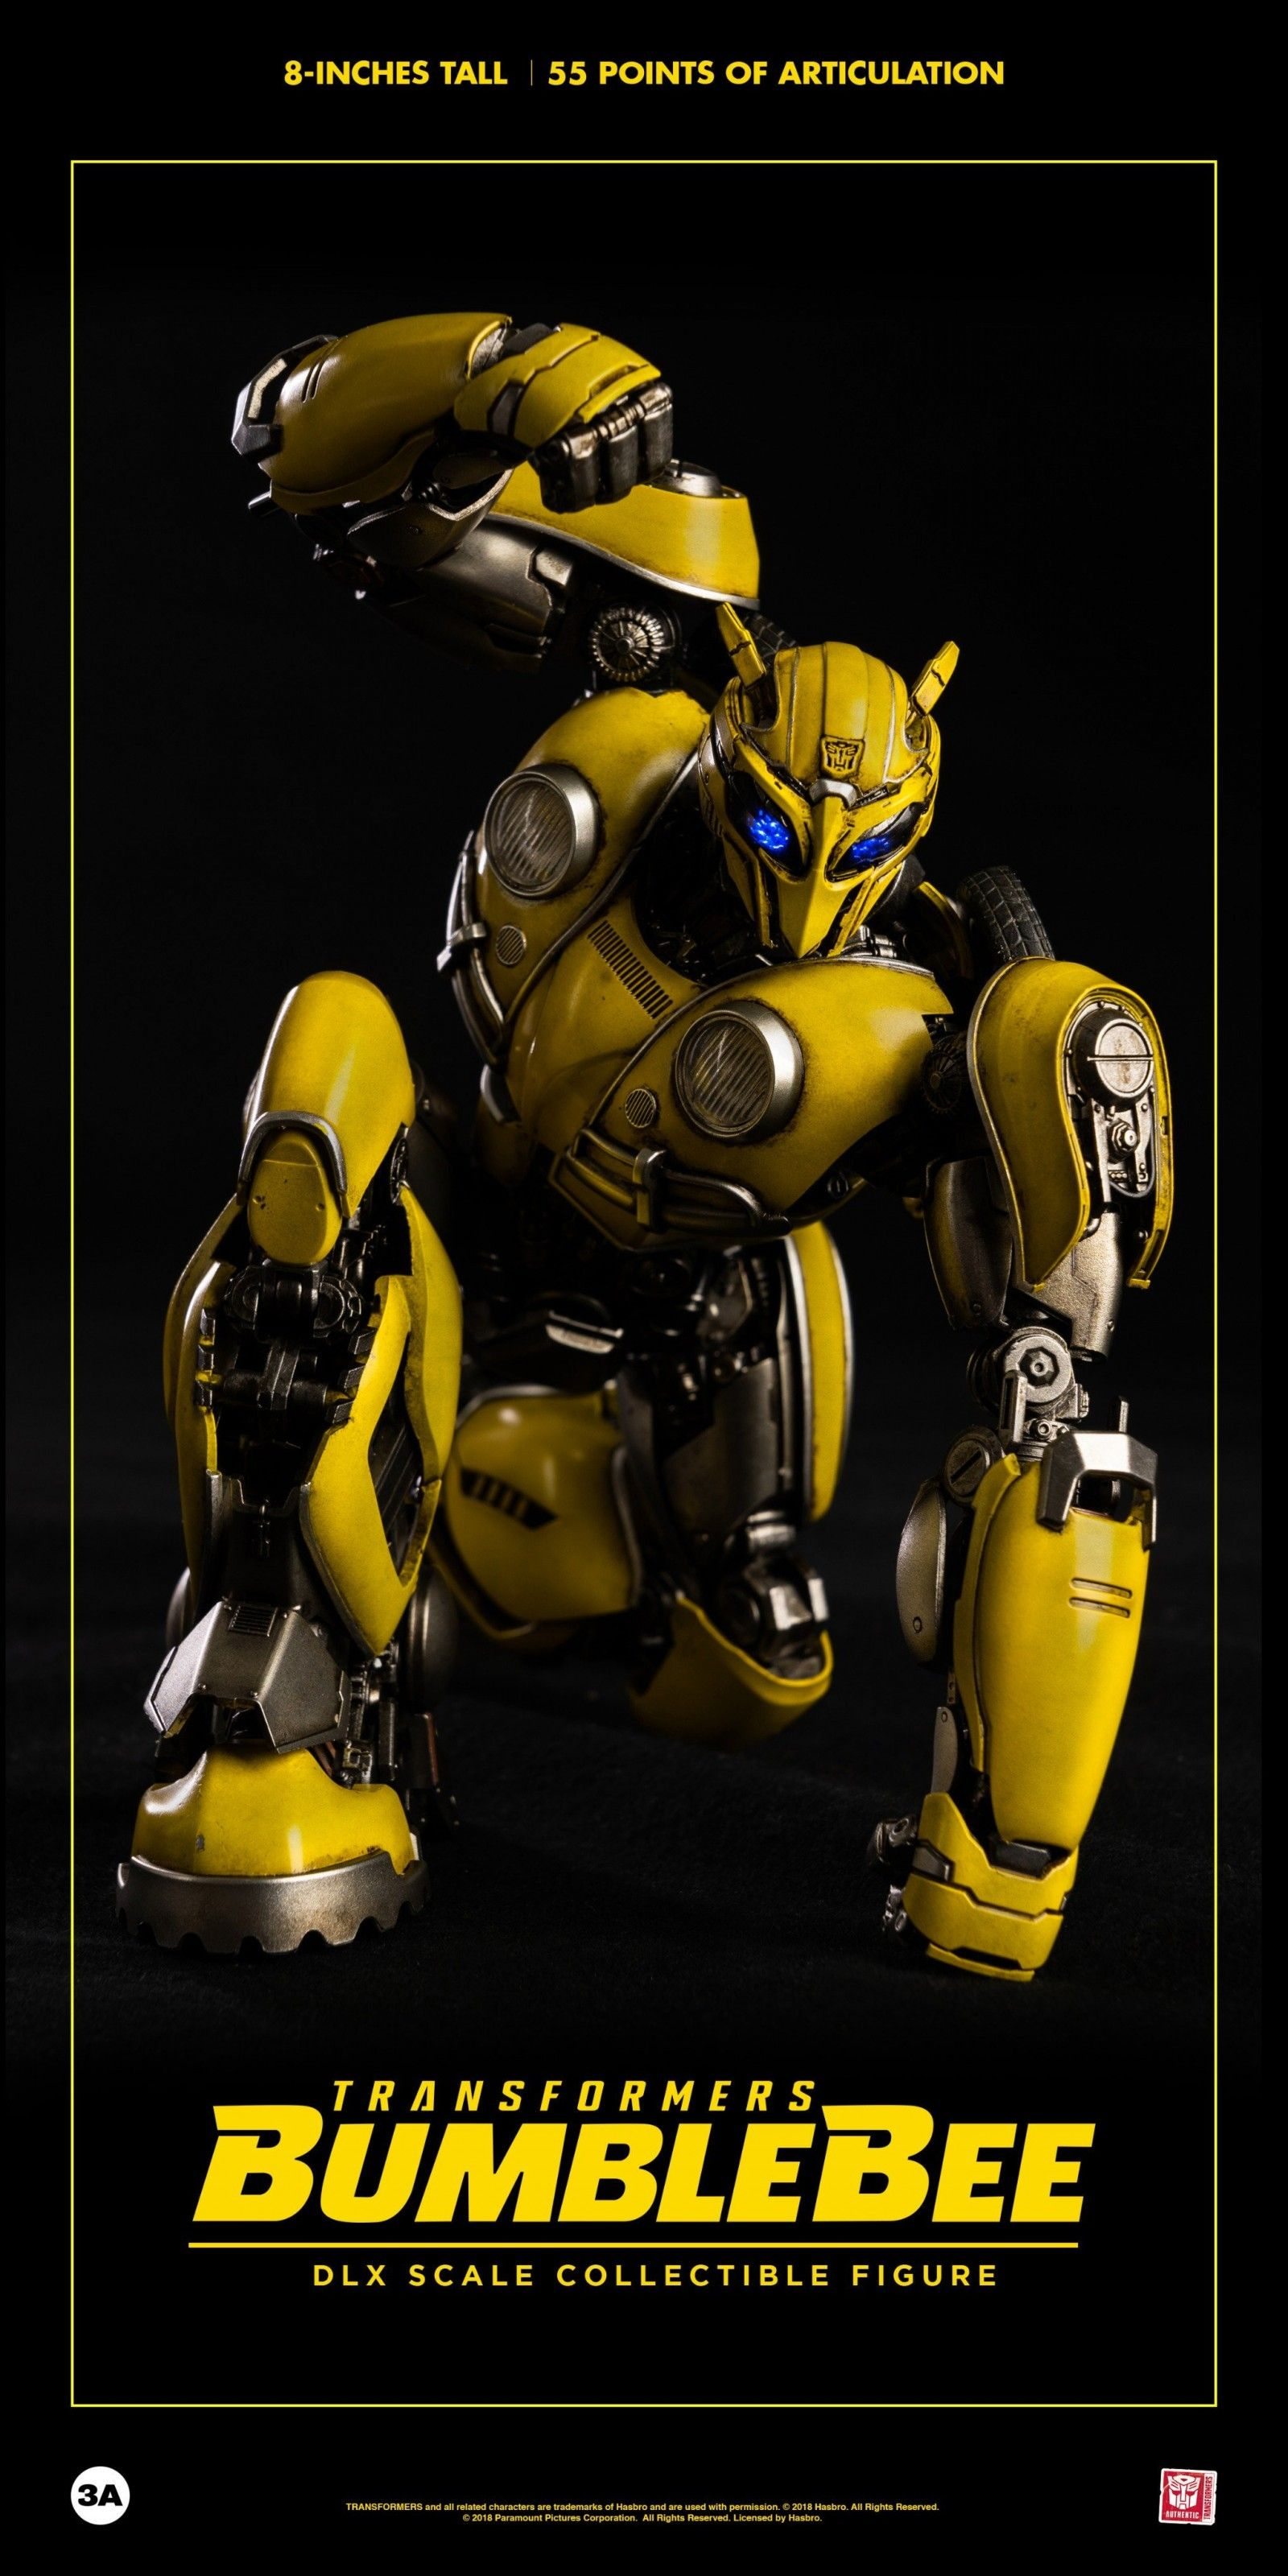 864936b94 Transformers News: 3A Transformers DLX Collectible Figure Series Bumblebee  revealed and TFsource preorder.